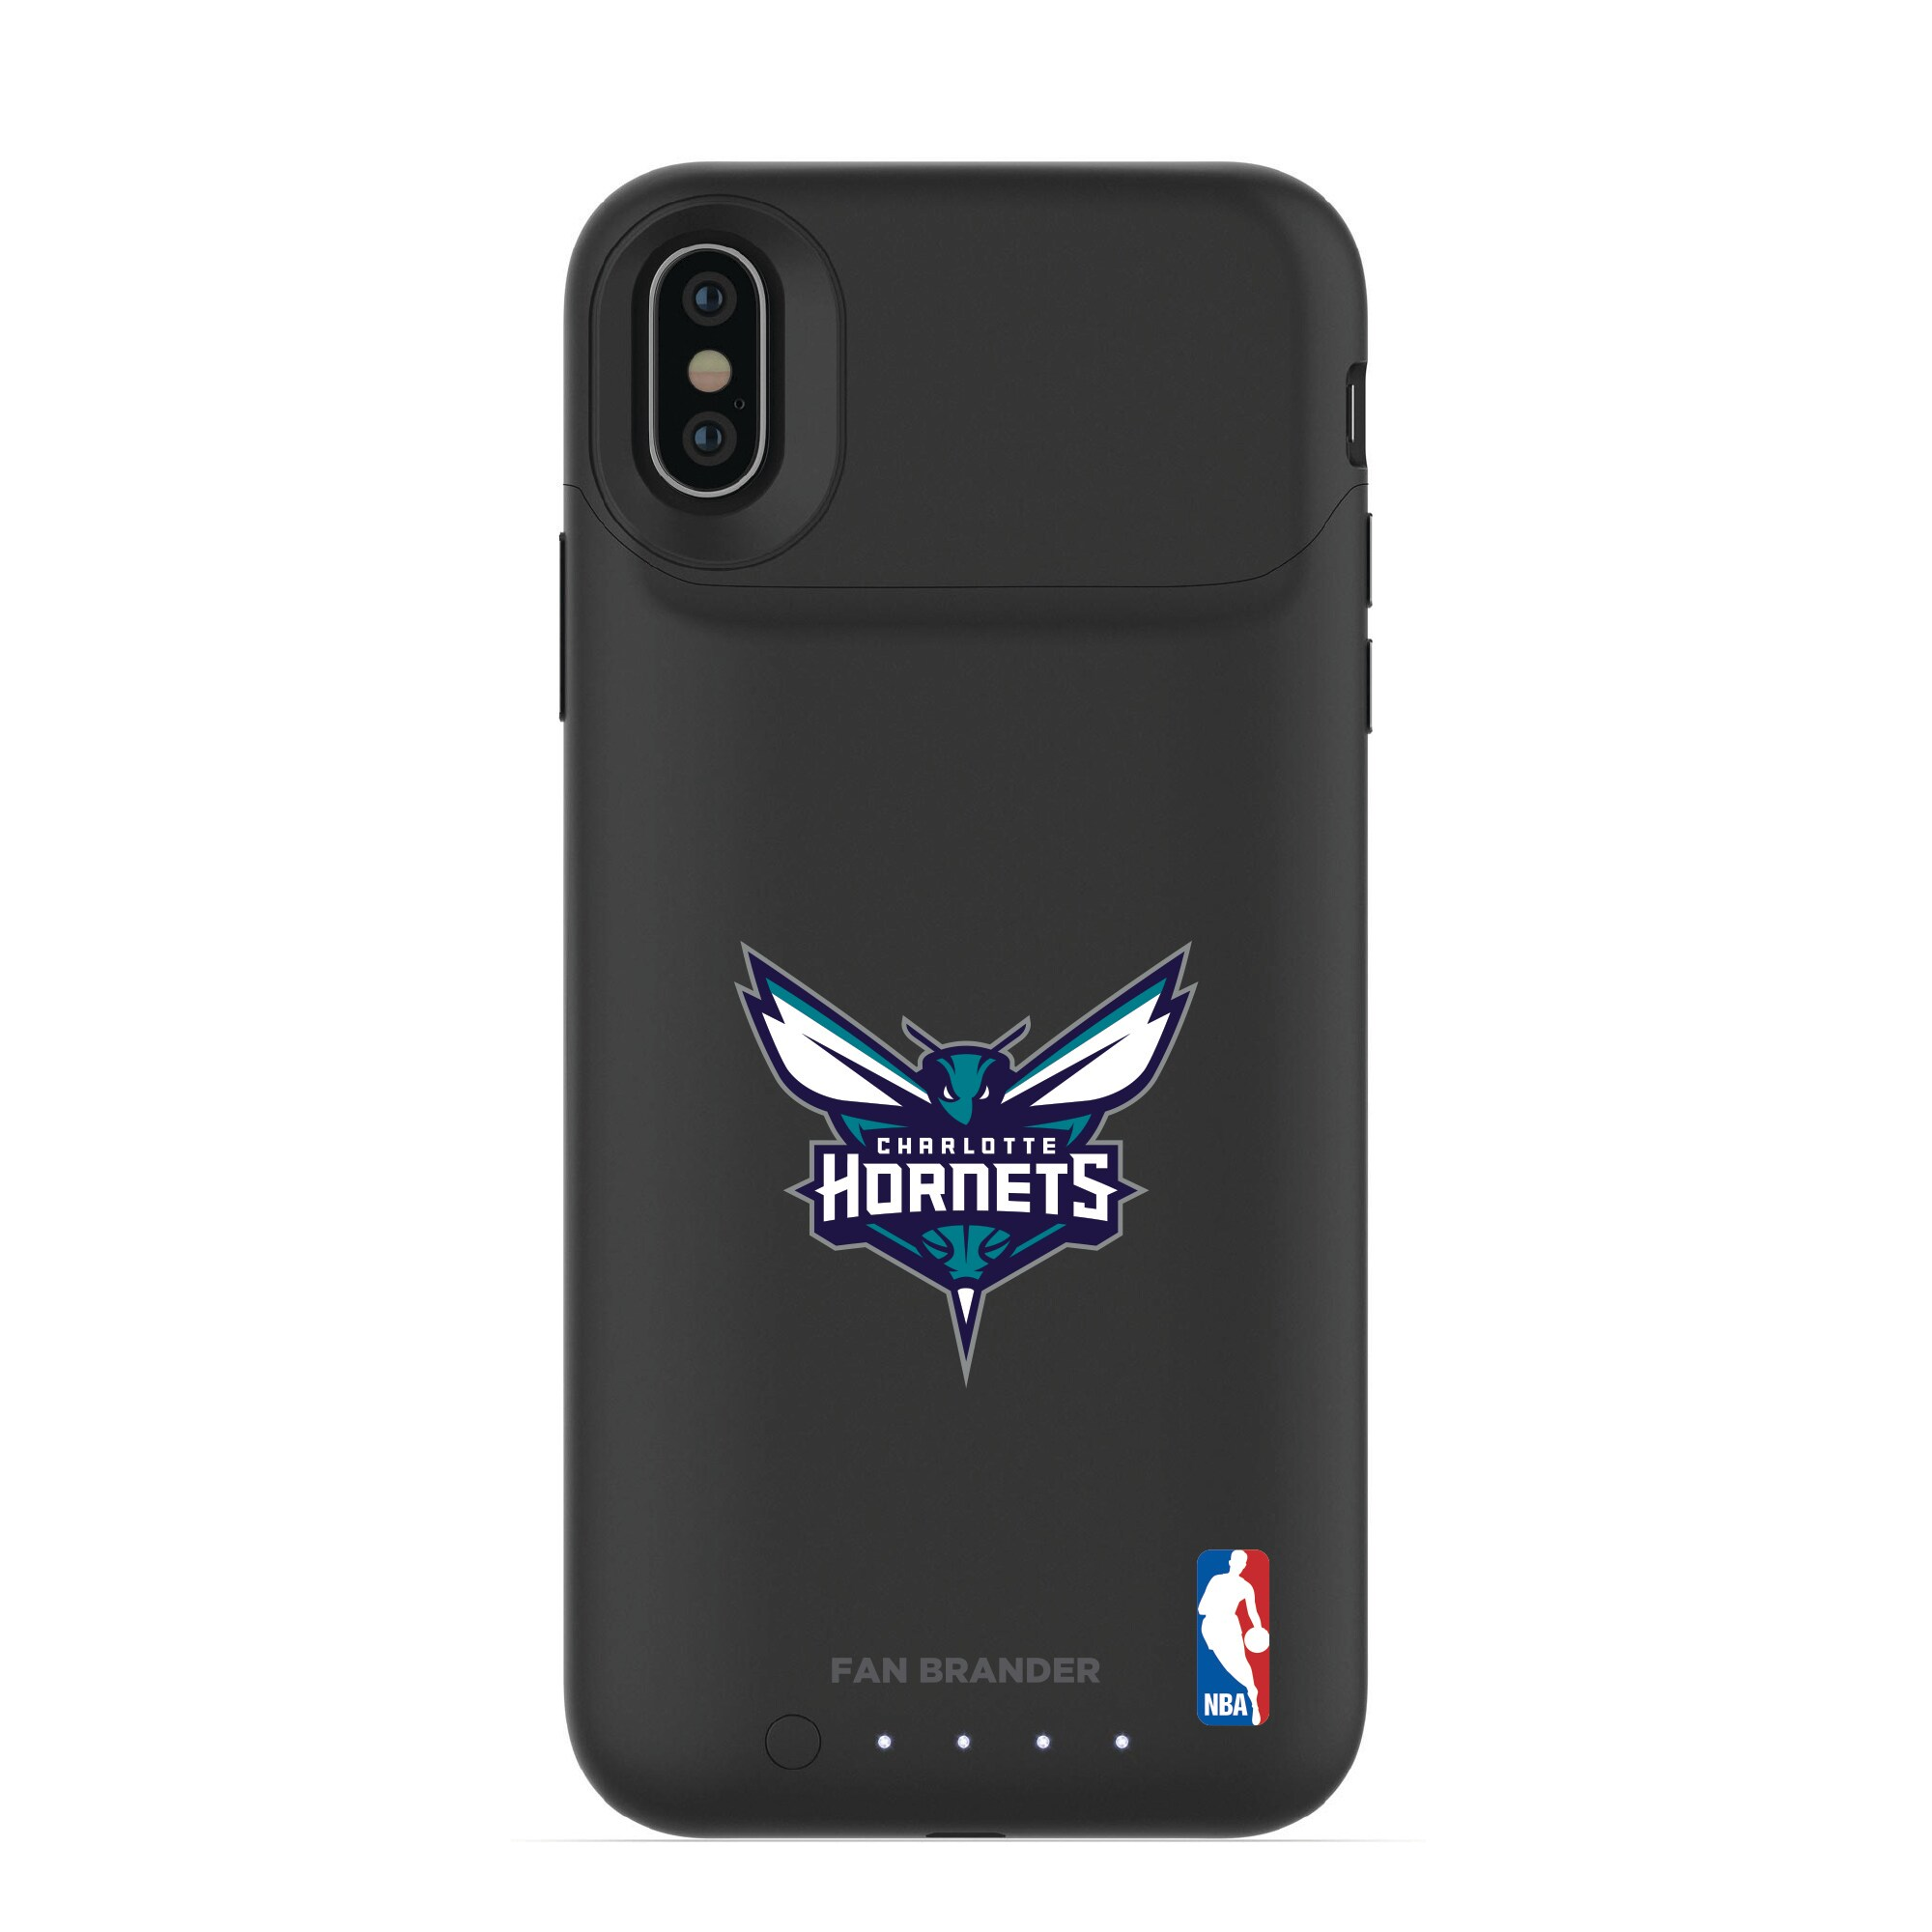 Charlotte Hornets mophie Primary Logo iPhone Case